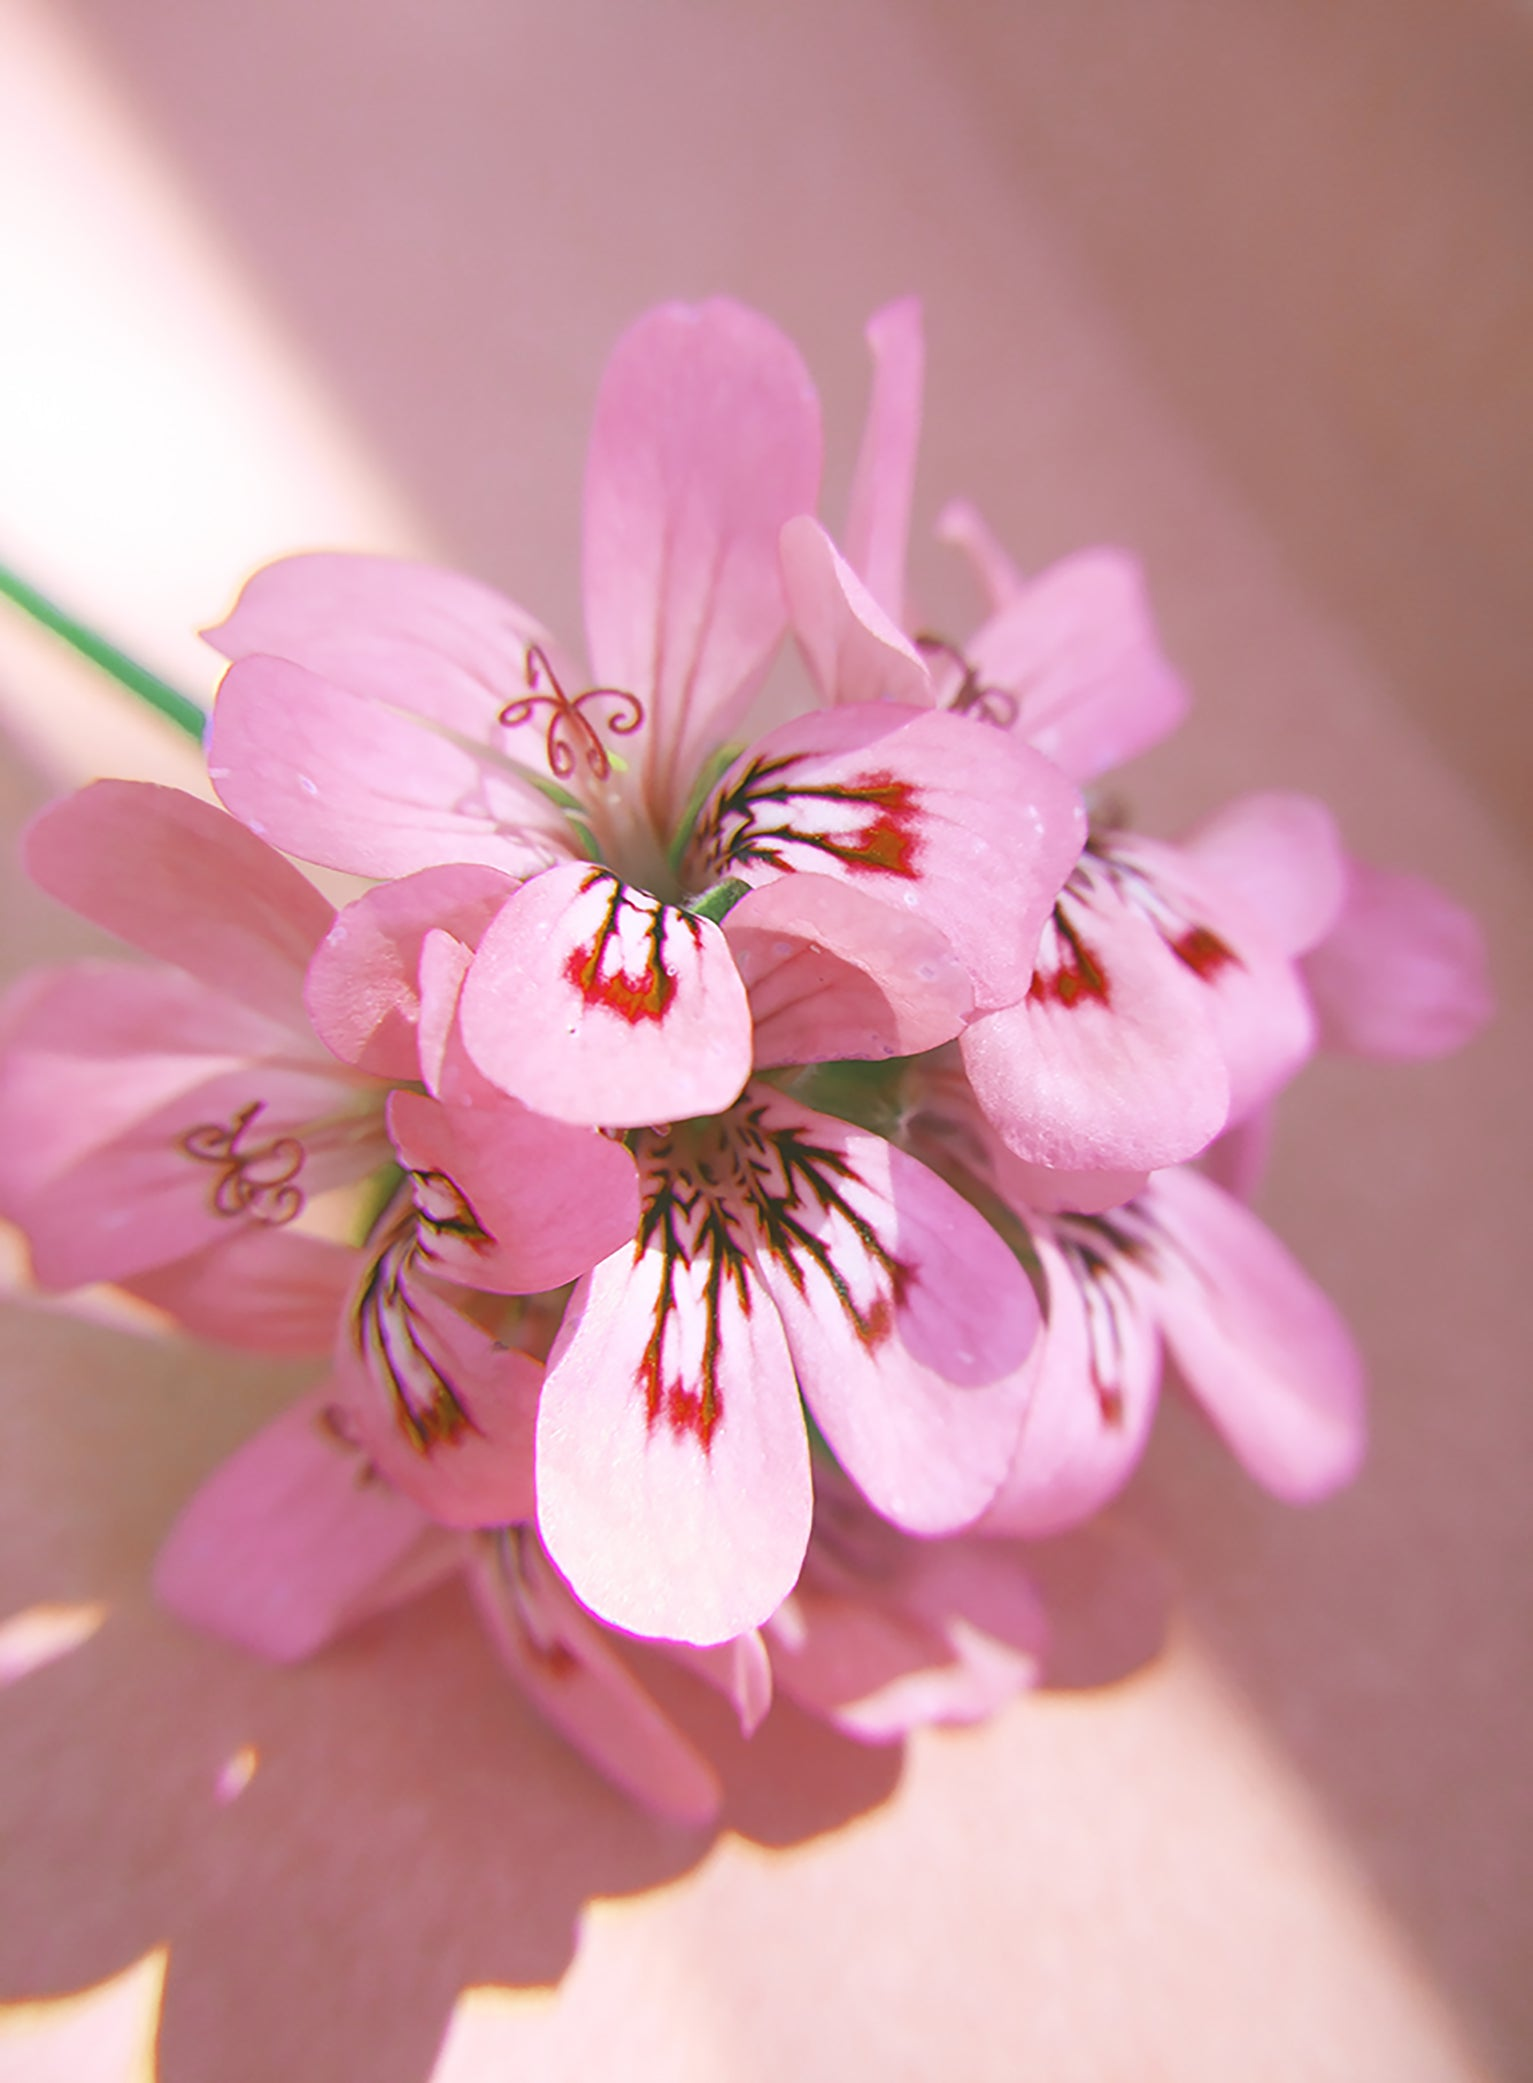 Rose geranium facial oil